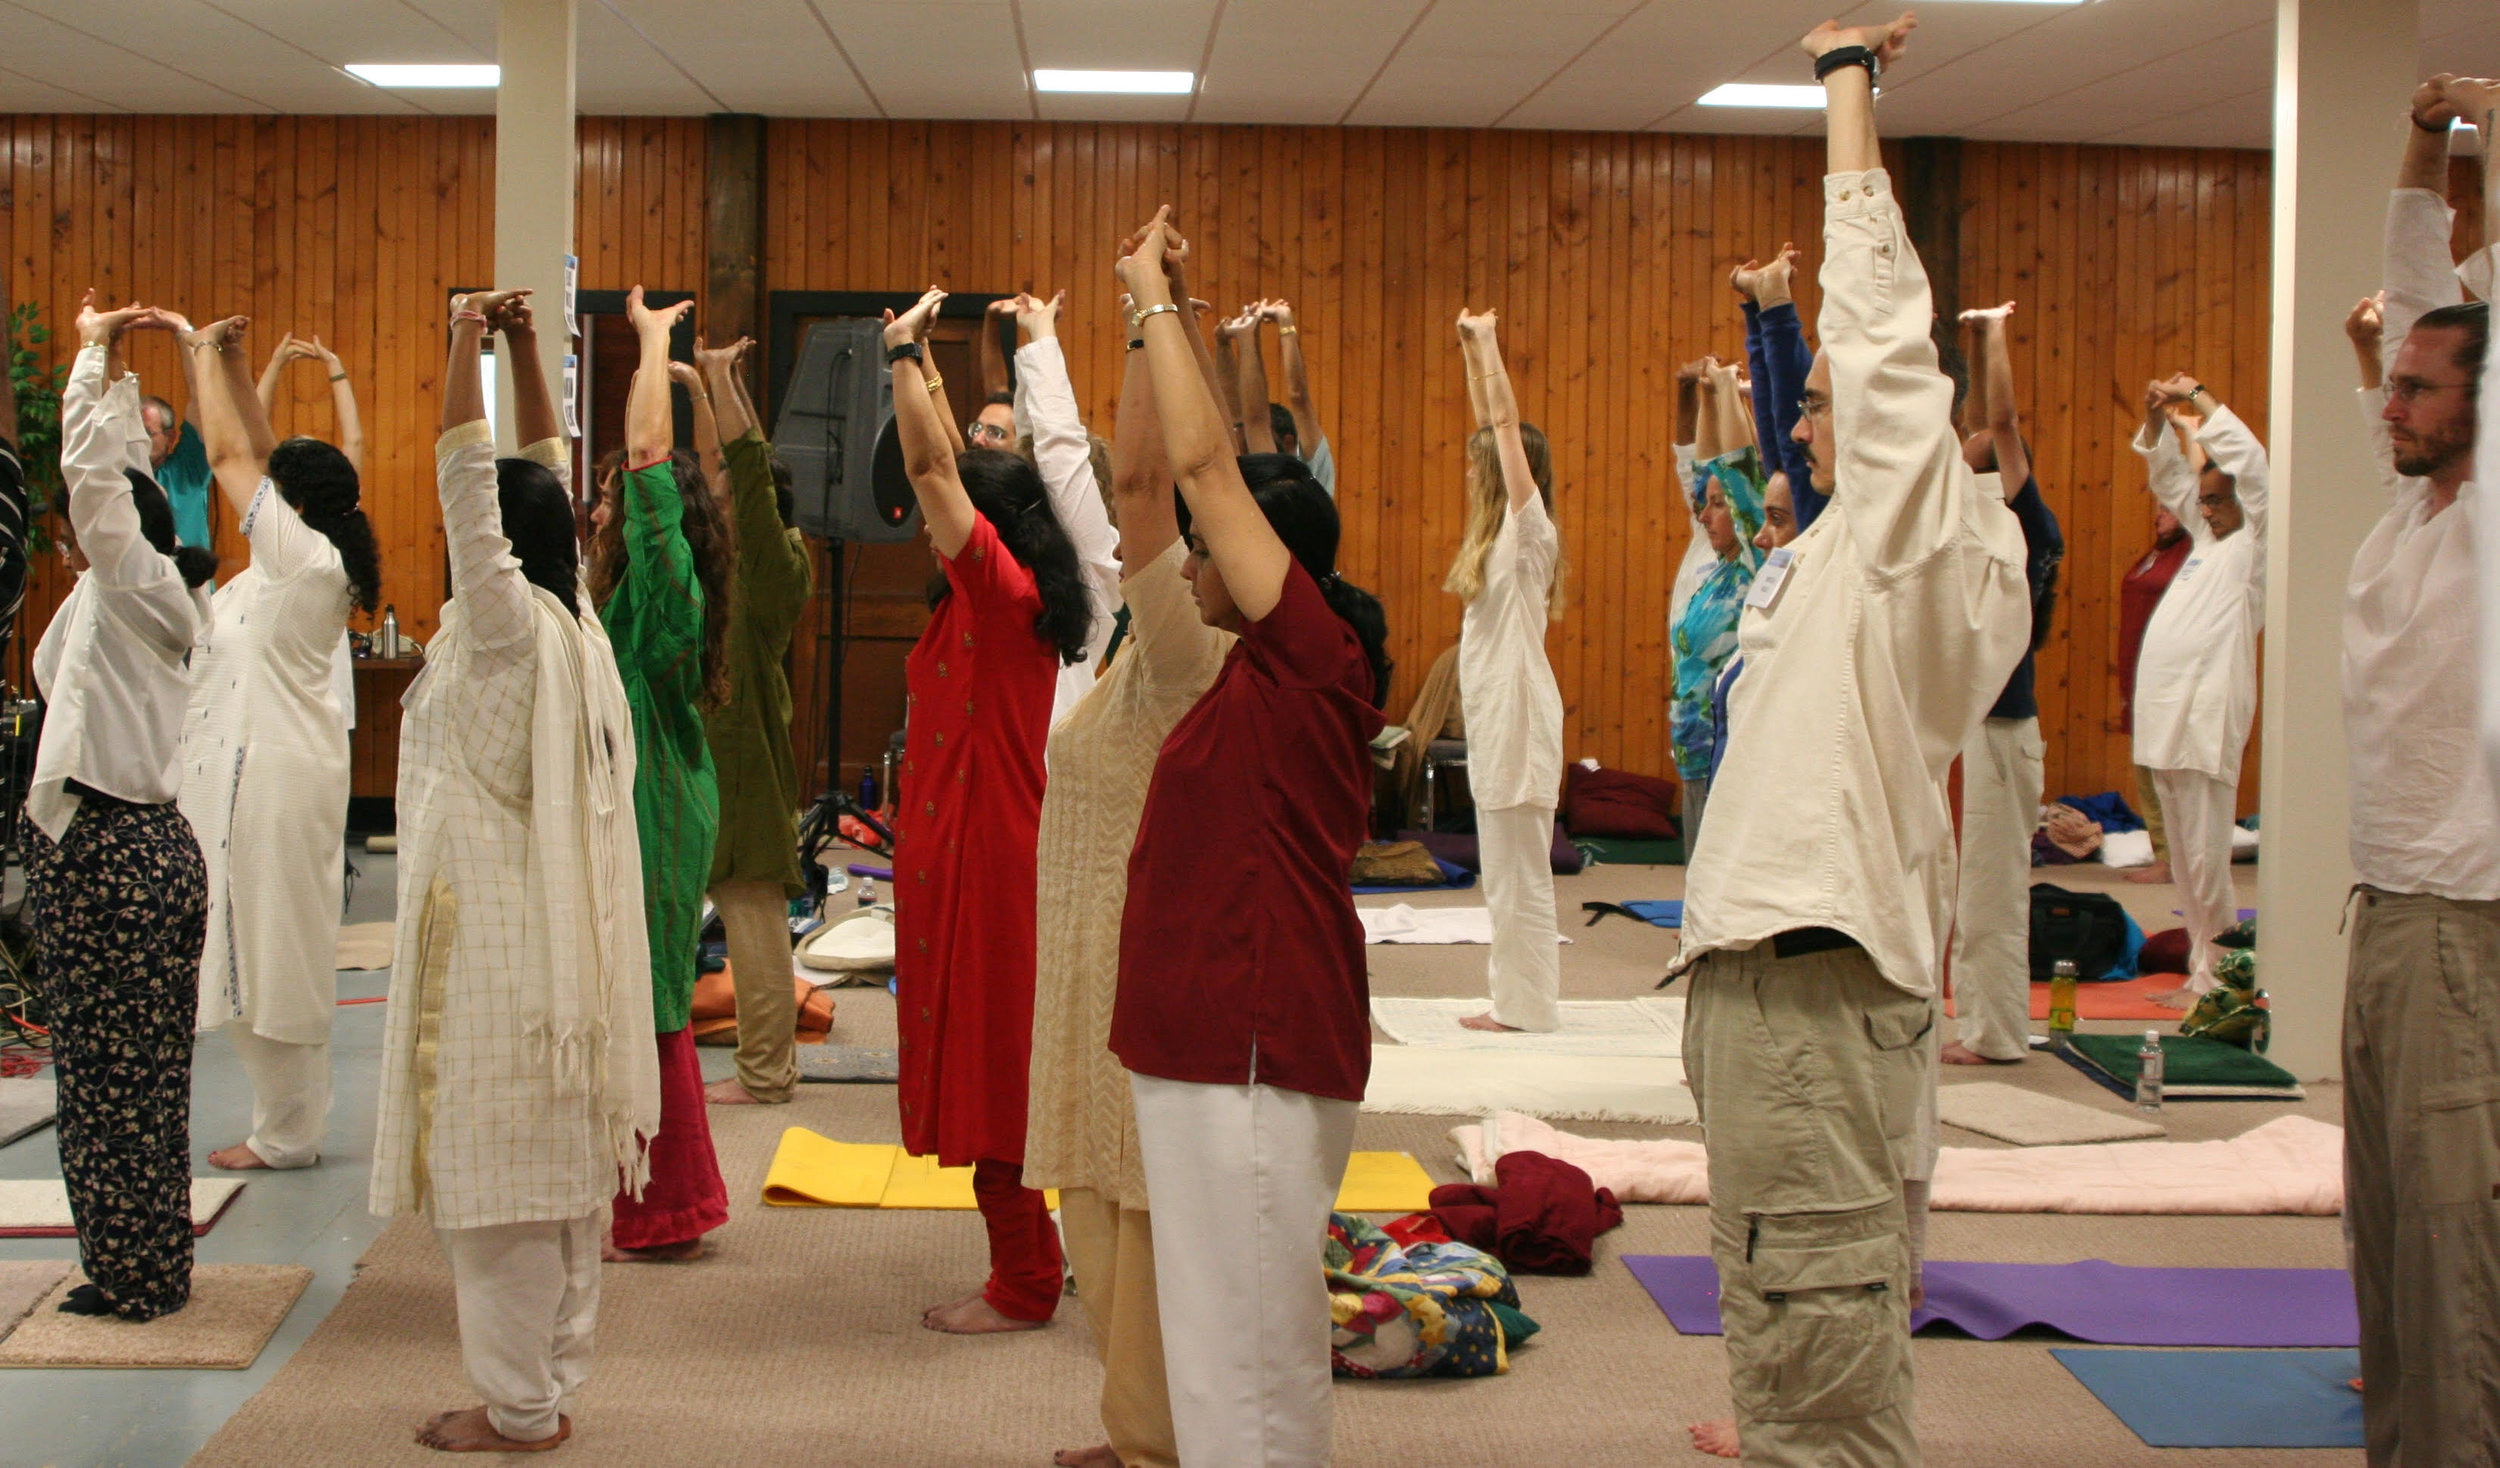 Pam teaching prana circuit at New Vrindaban temple, West Virginia, 2009